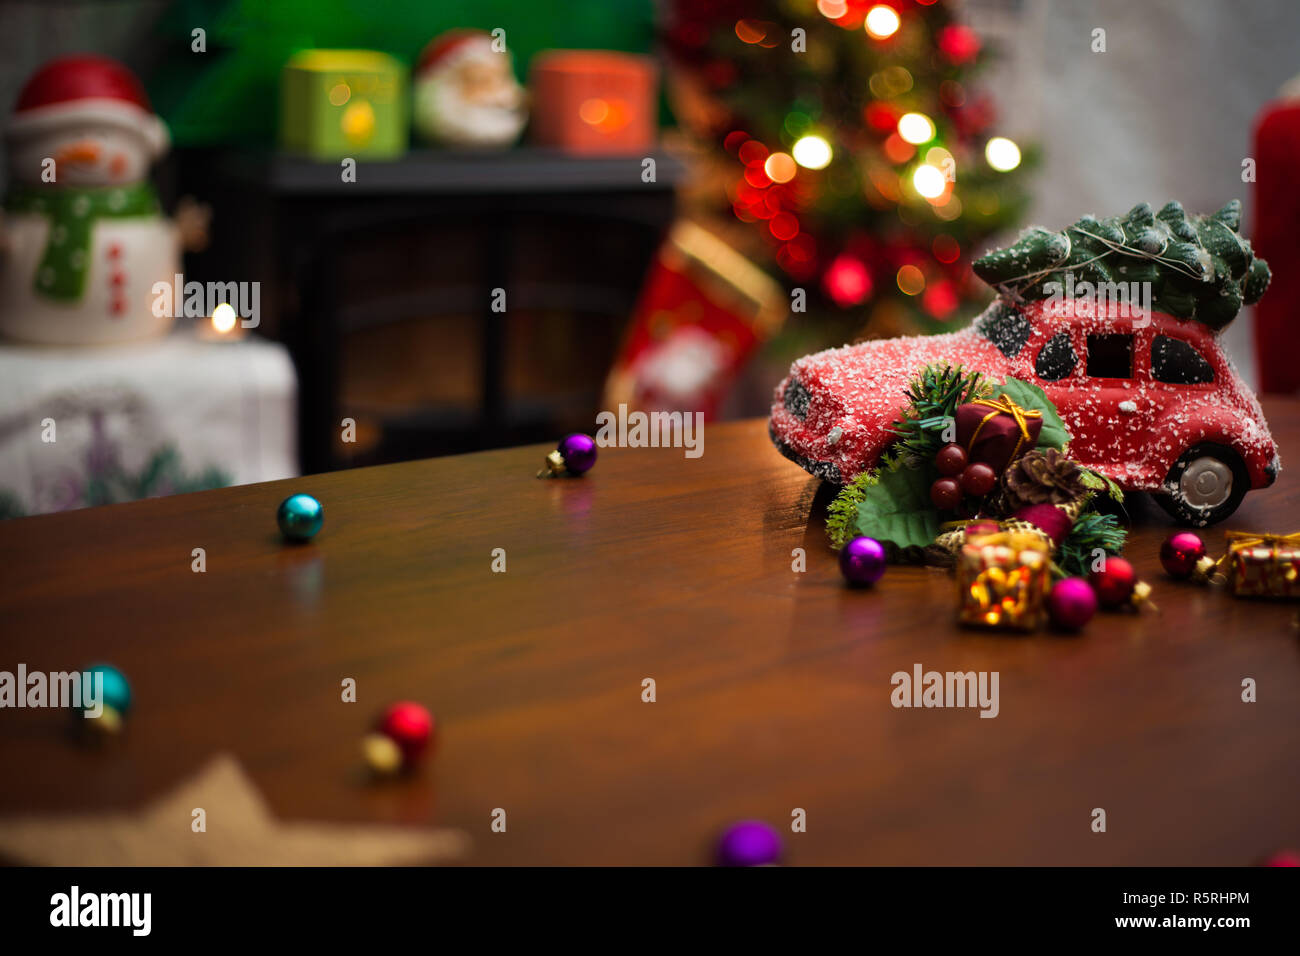 Christmas Decoration Background With Christmas Tree On Red Car Add Your Own Text Stock Photo Alamy